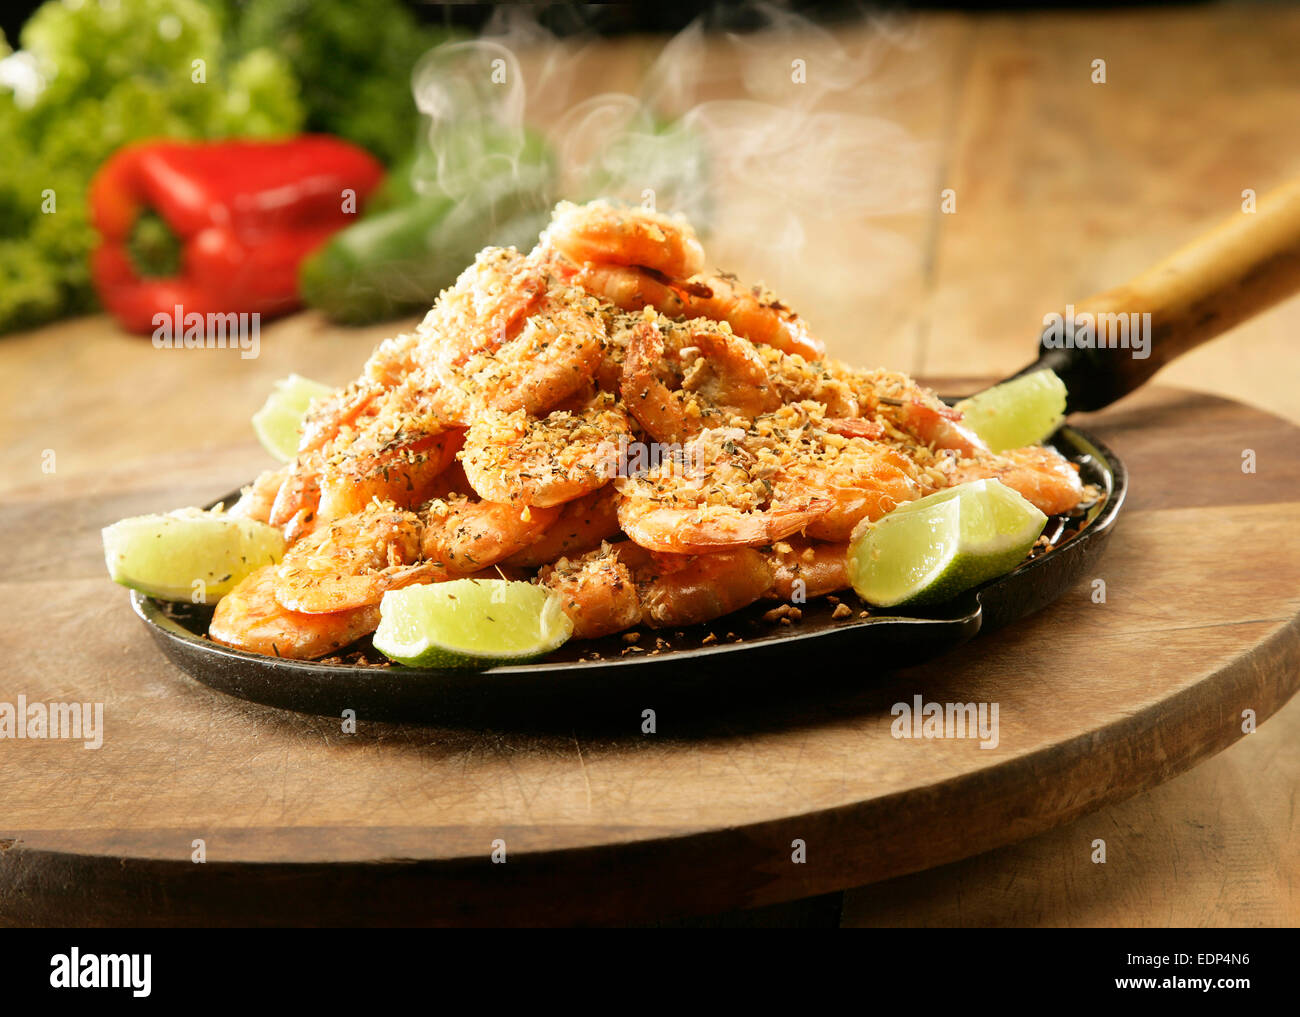 A frying pan with steaming hot prawns - Stock Image